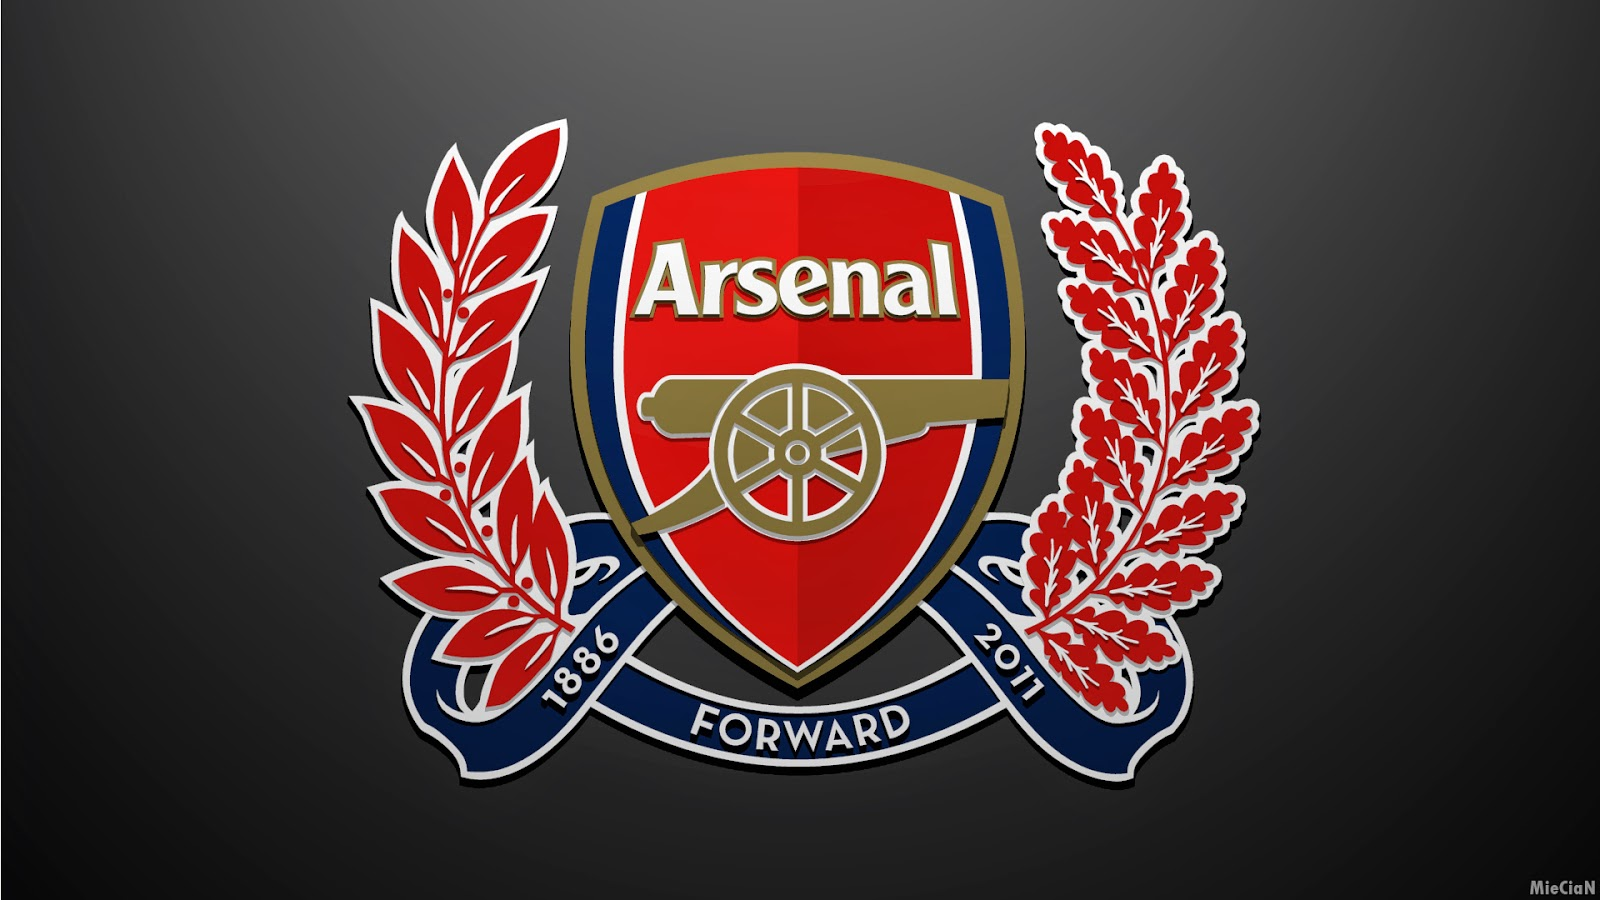 Arsenal Wallpaper For Android On Wallpaperget Com: Arsenal Football Club Wallpaper